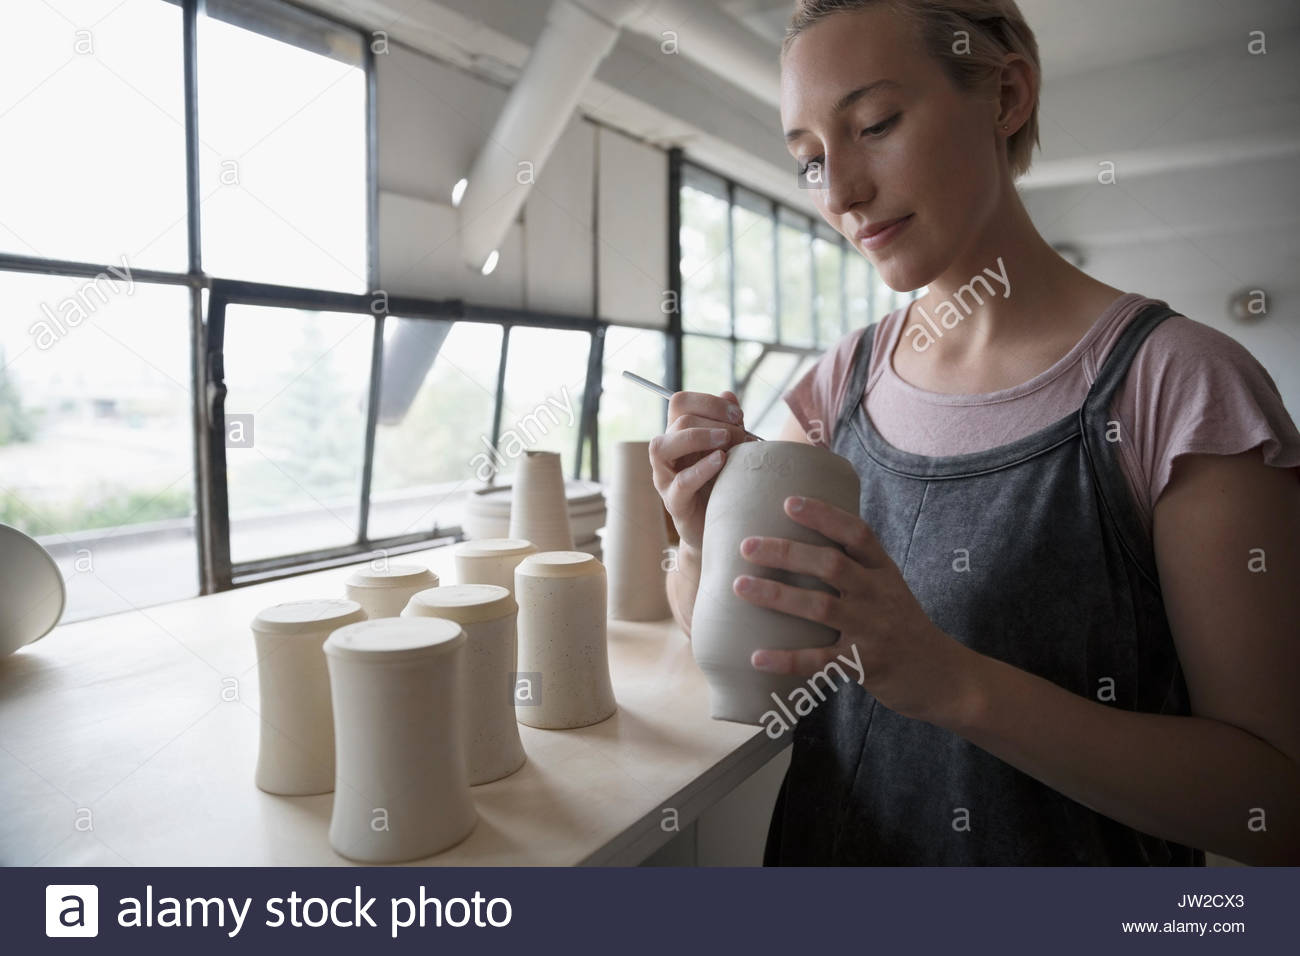 Female potter signing, marking bottoms of clay vases in pottery studio - Stock Image